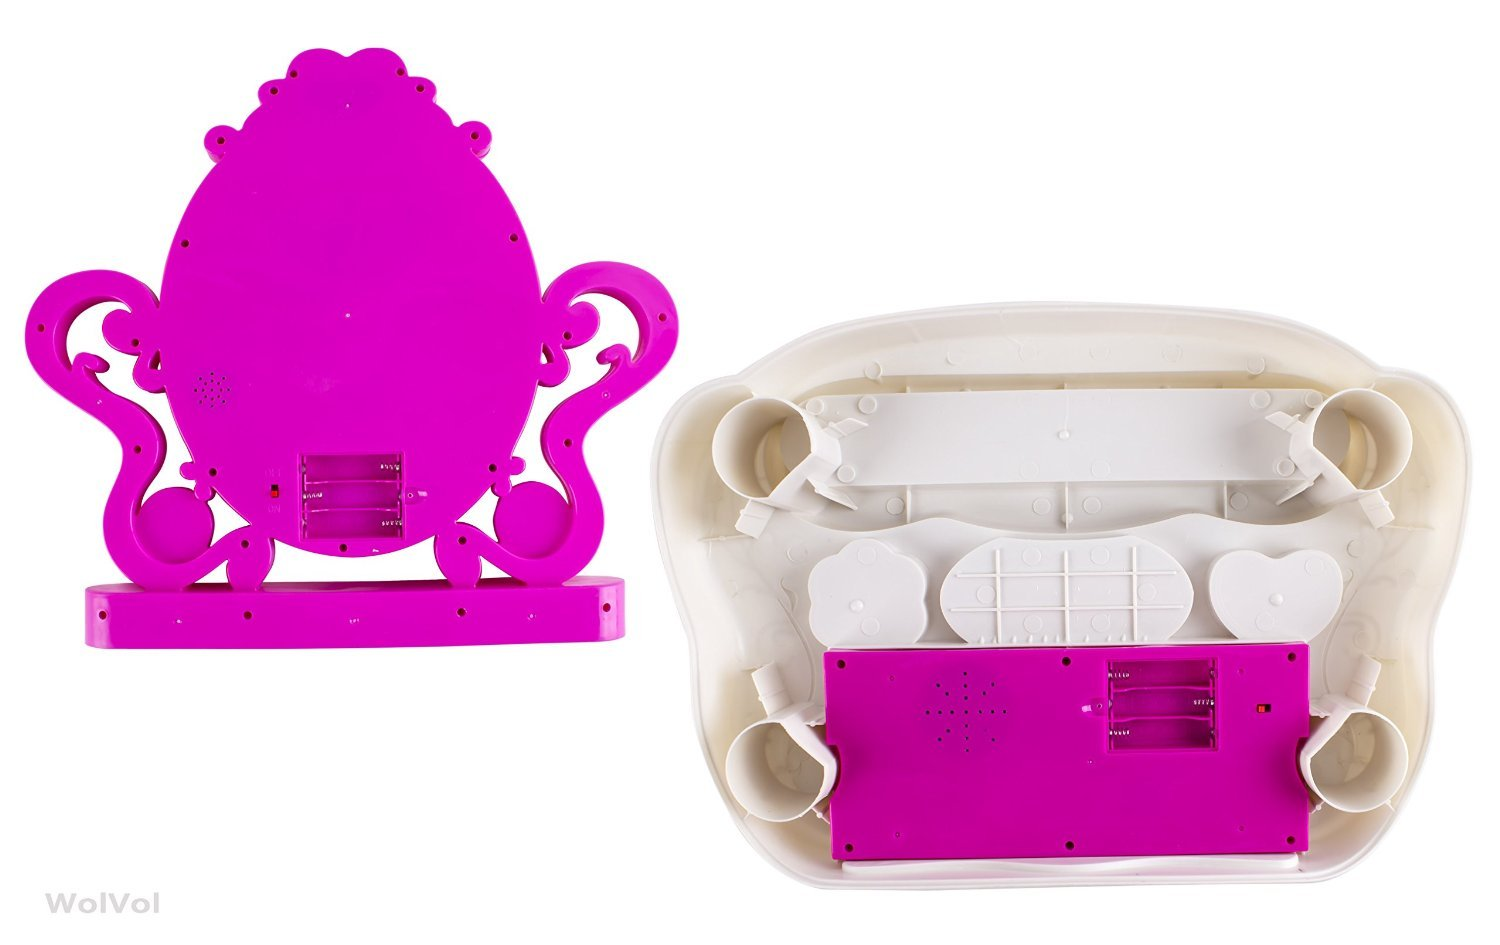 WolVol 2-in-1 Vanity Set Girls Toy Makeup Accessories with Working Piano & Flashing Lights, Big Mirror, Cosmetics, Working Hair Dryer - Glowing Princess Will Appear When Pressing The Mirror-Button by WolVol (Image #6)